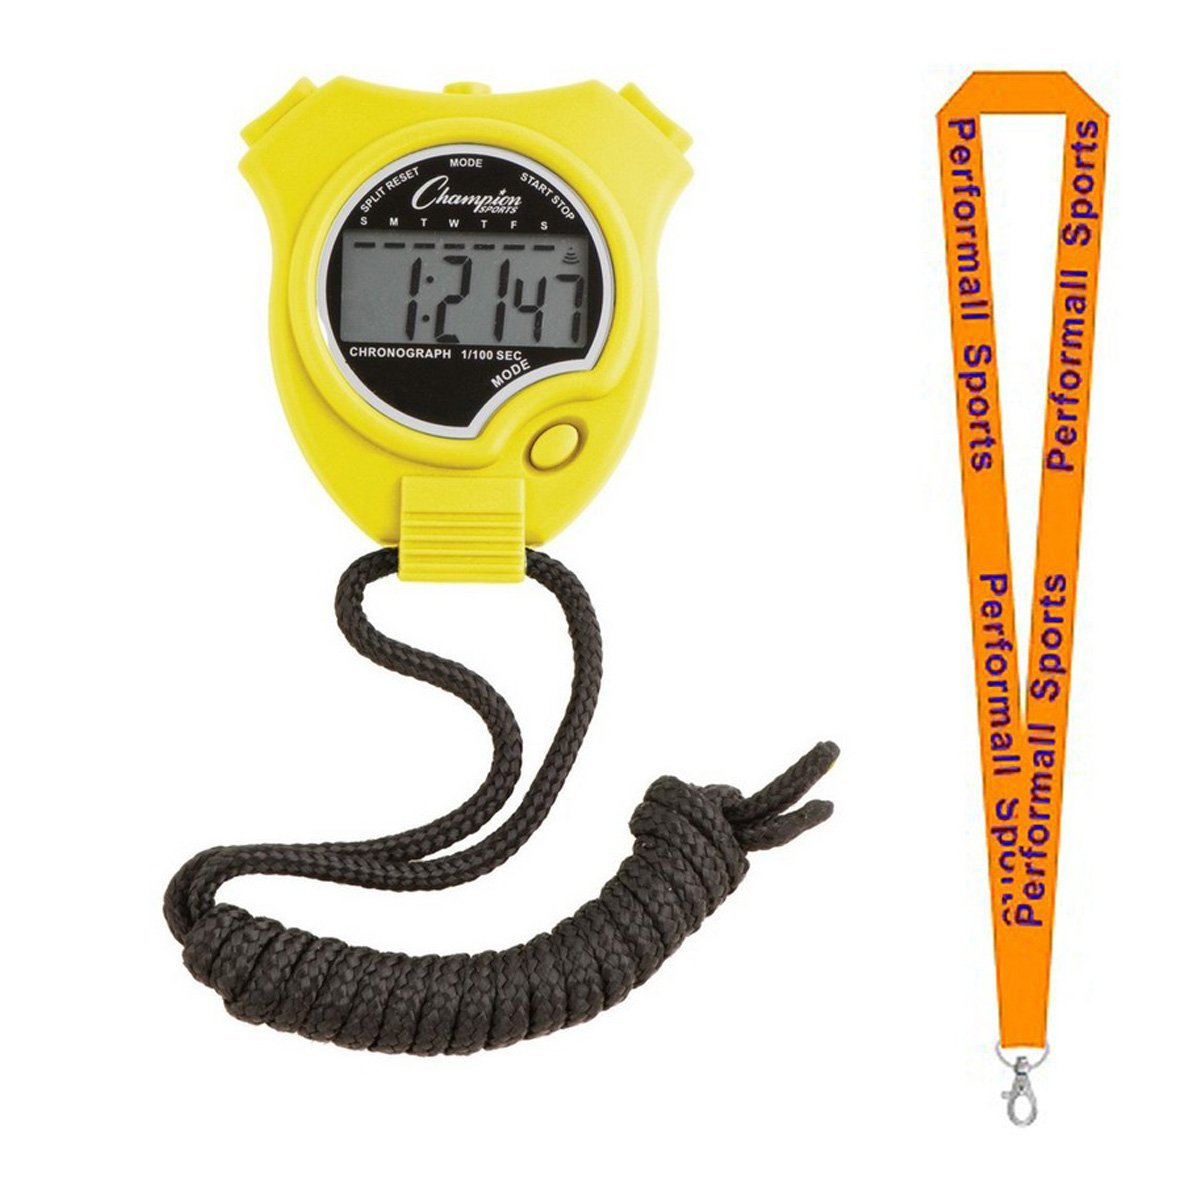 Champion Sports Bundle: Stop Watches Assorted Colors and Sizes with 1 Performall Lanyard